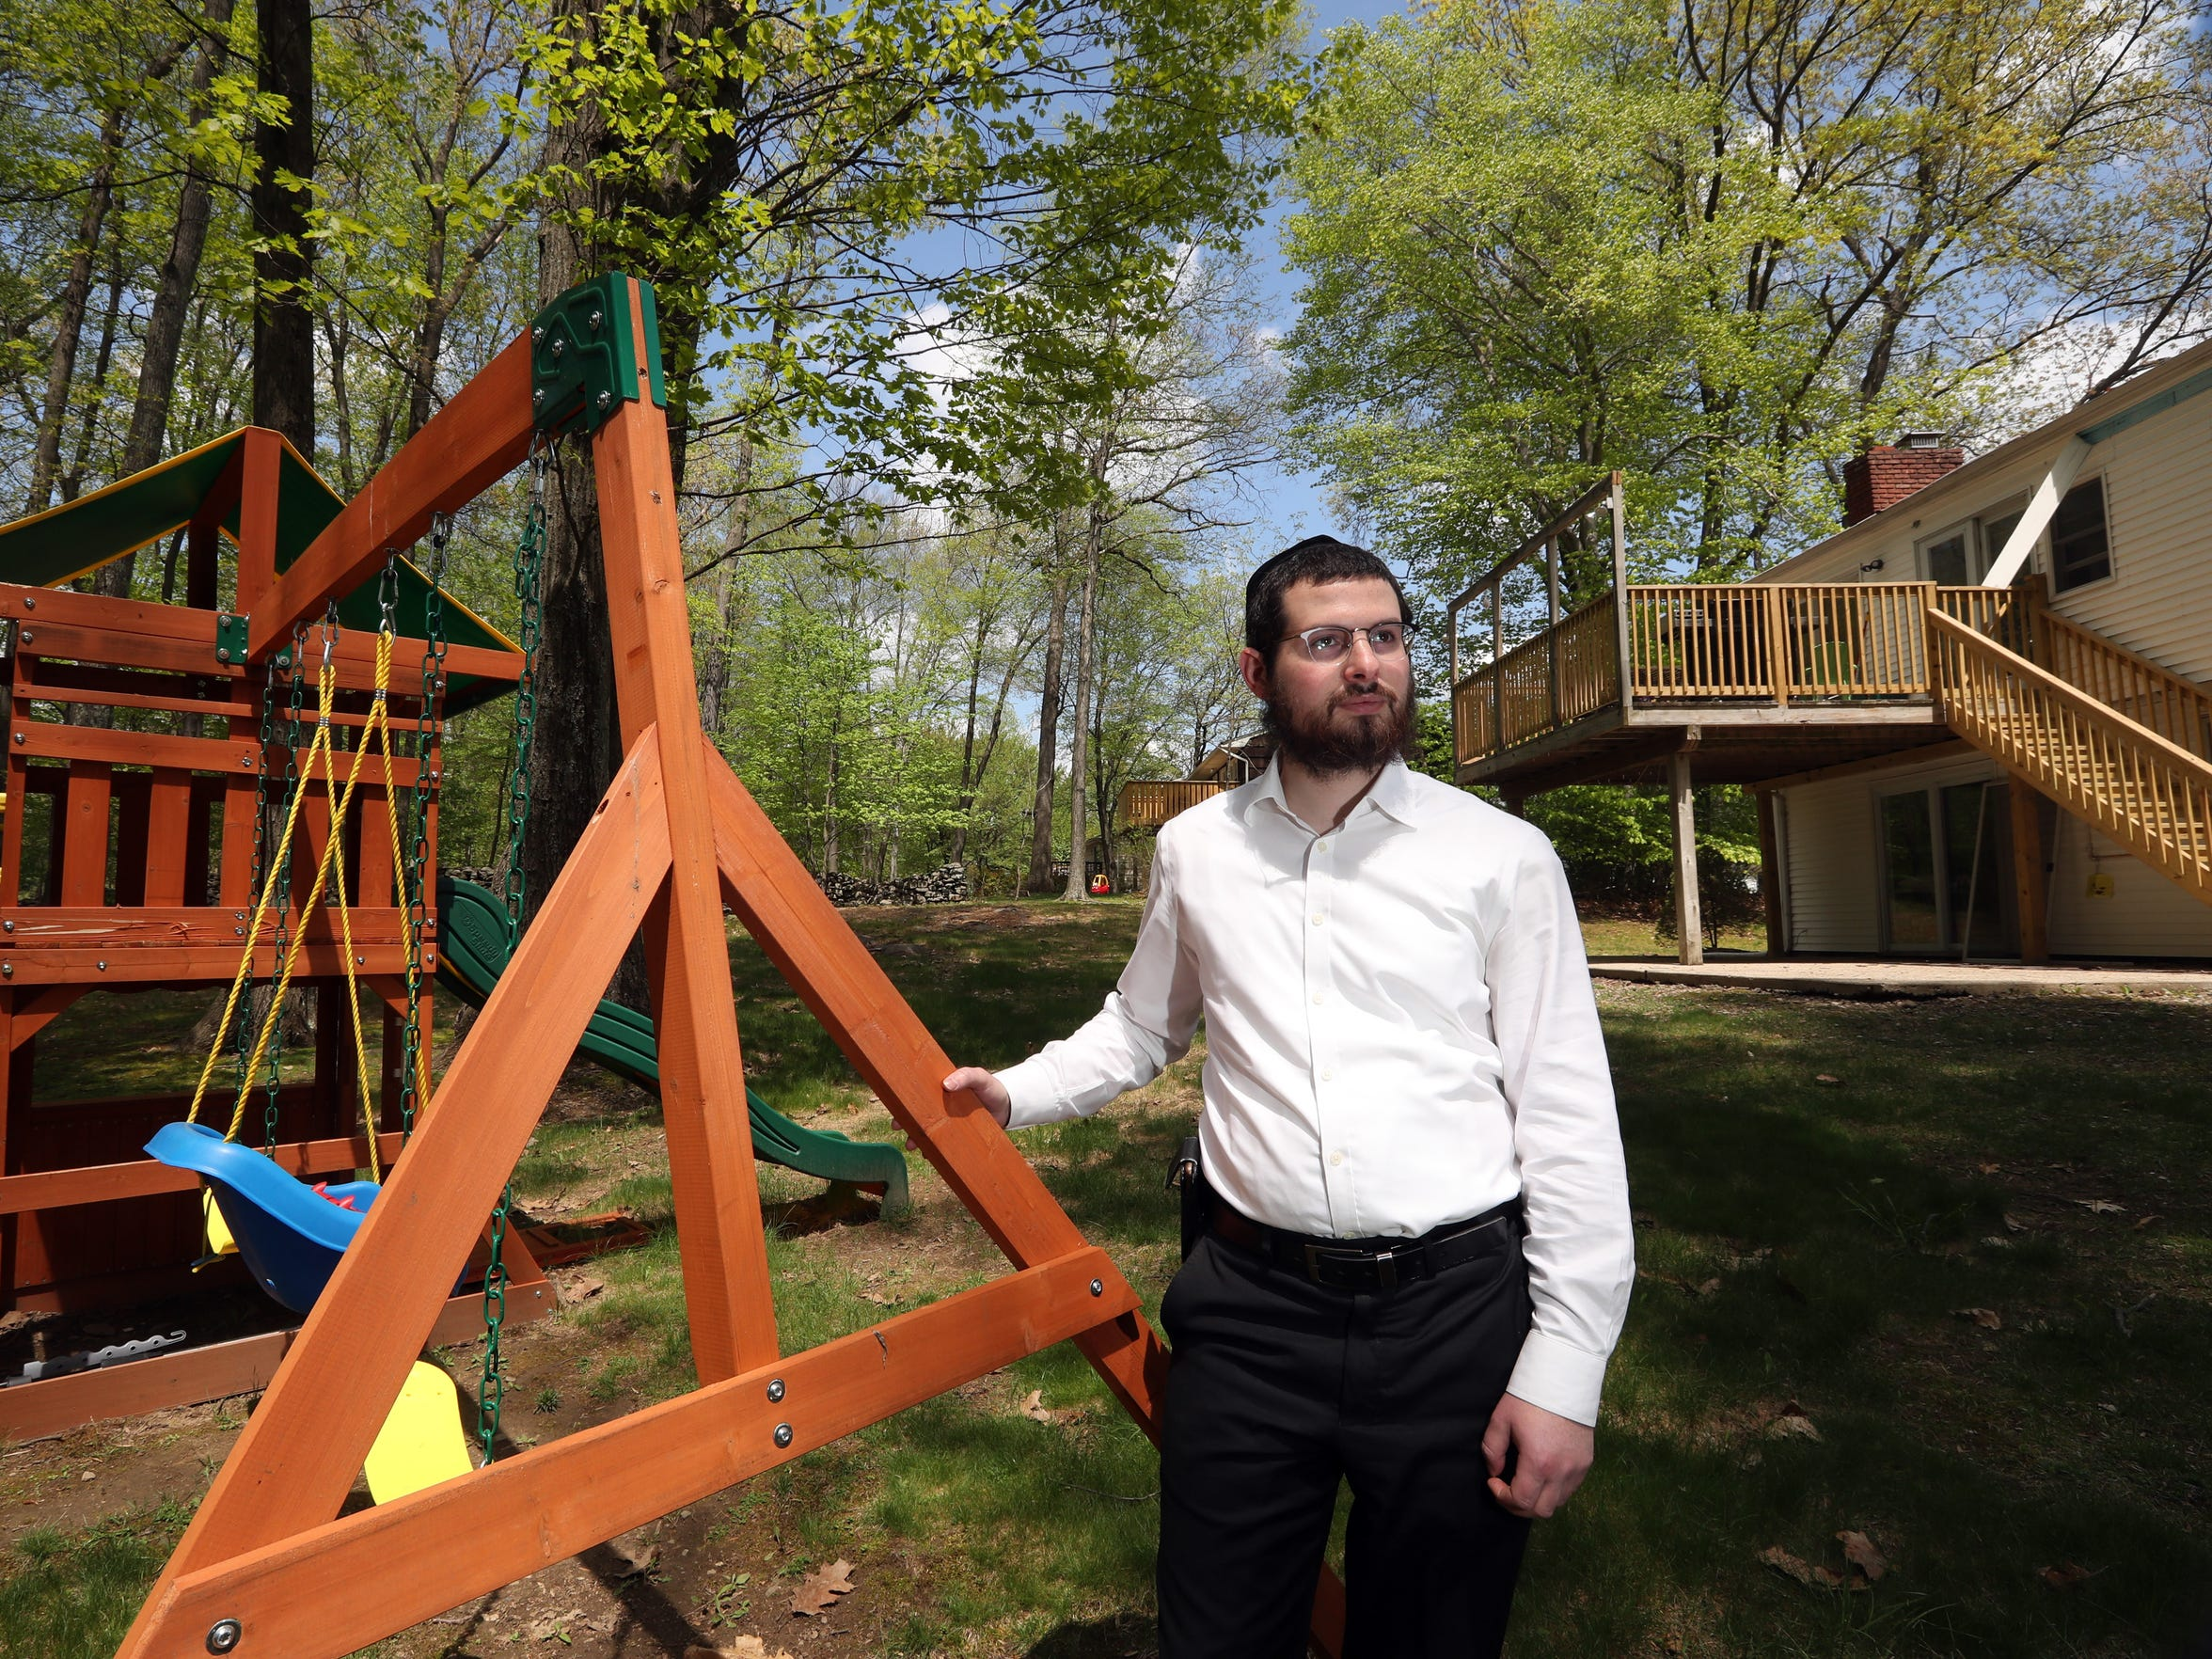 Nathan Unger, 29, stands in the backyard of his home in Airmont on May 8, 2018. Unger, who lives with his wife and two children, says he's been denied permits to expand his house even though he filed before the village's building moratorium was enacted. Building Inspector Lou Zummo says that Unger's original application was incomplete and that he didn't update the paperwork before the moratorium went into effect.